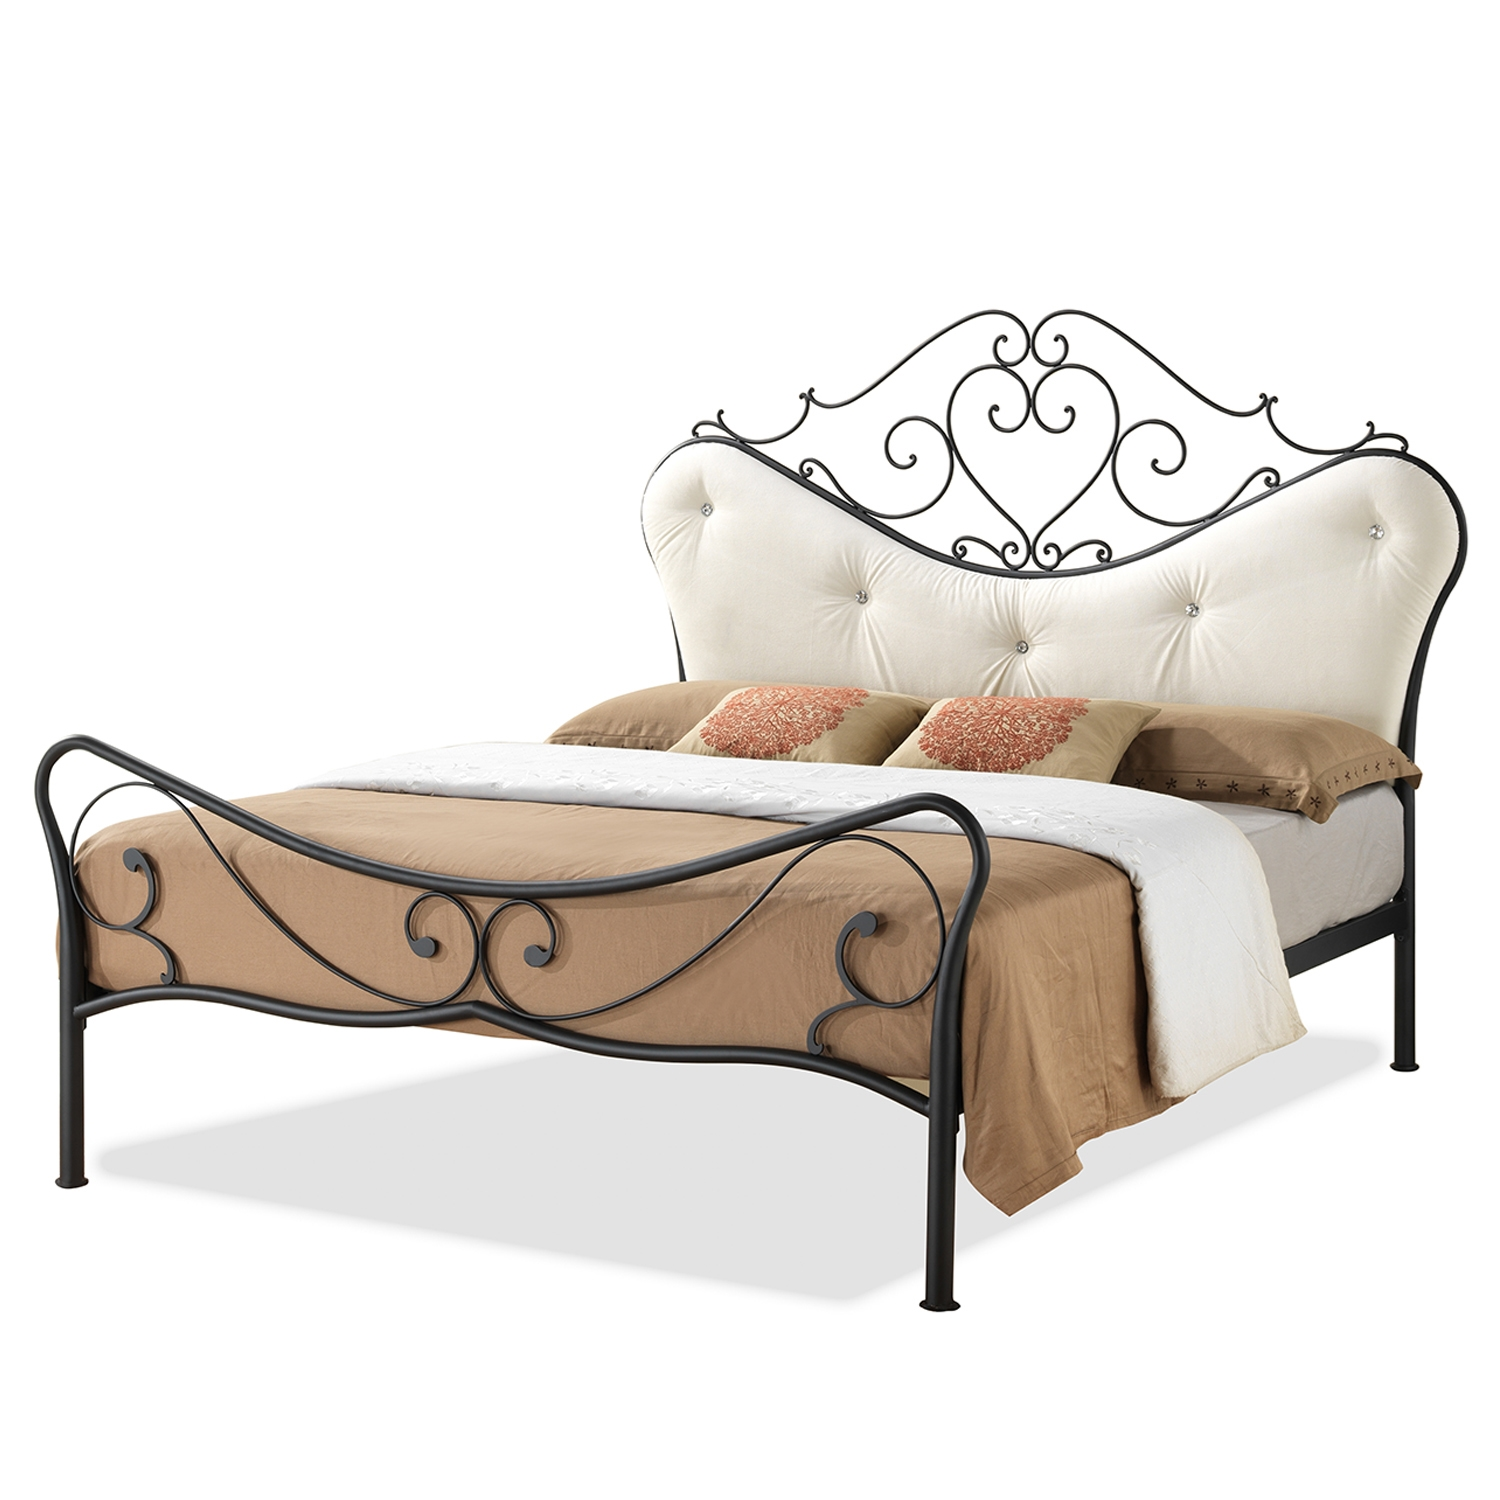 Baxton Studio Alanna Queen Size Shabby Chic Metal Platform Bed With Beige  Tufted Headboard Baxton Studio